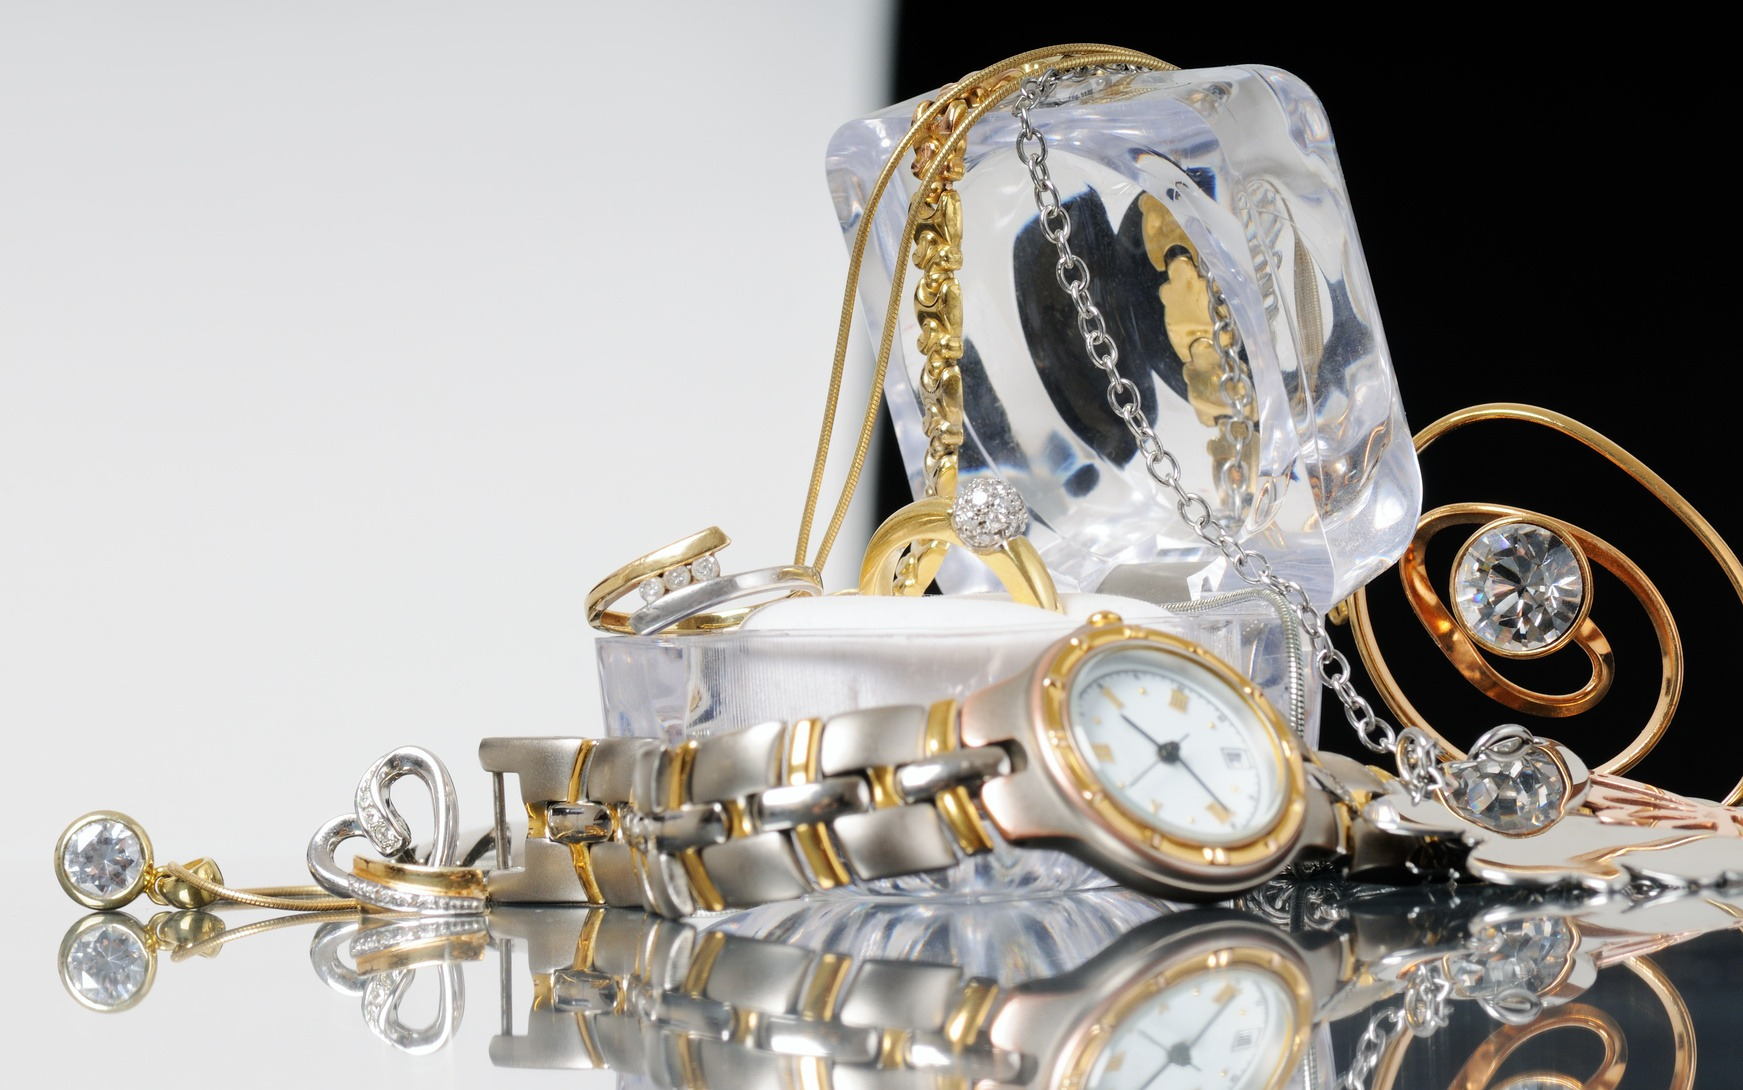 watch, jewelry and other valuable items